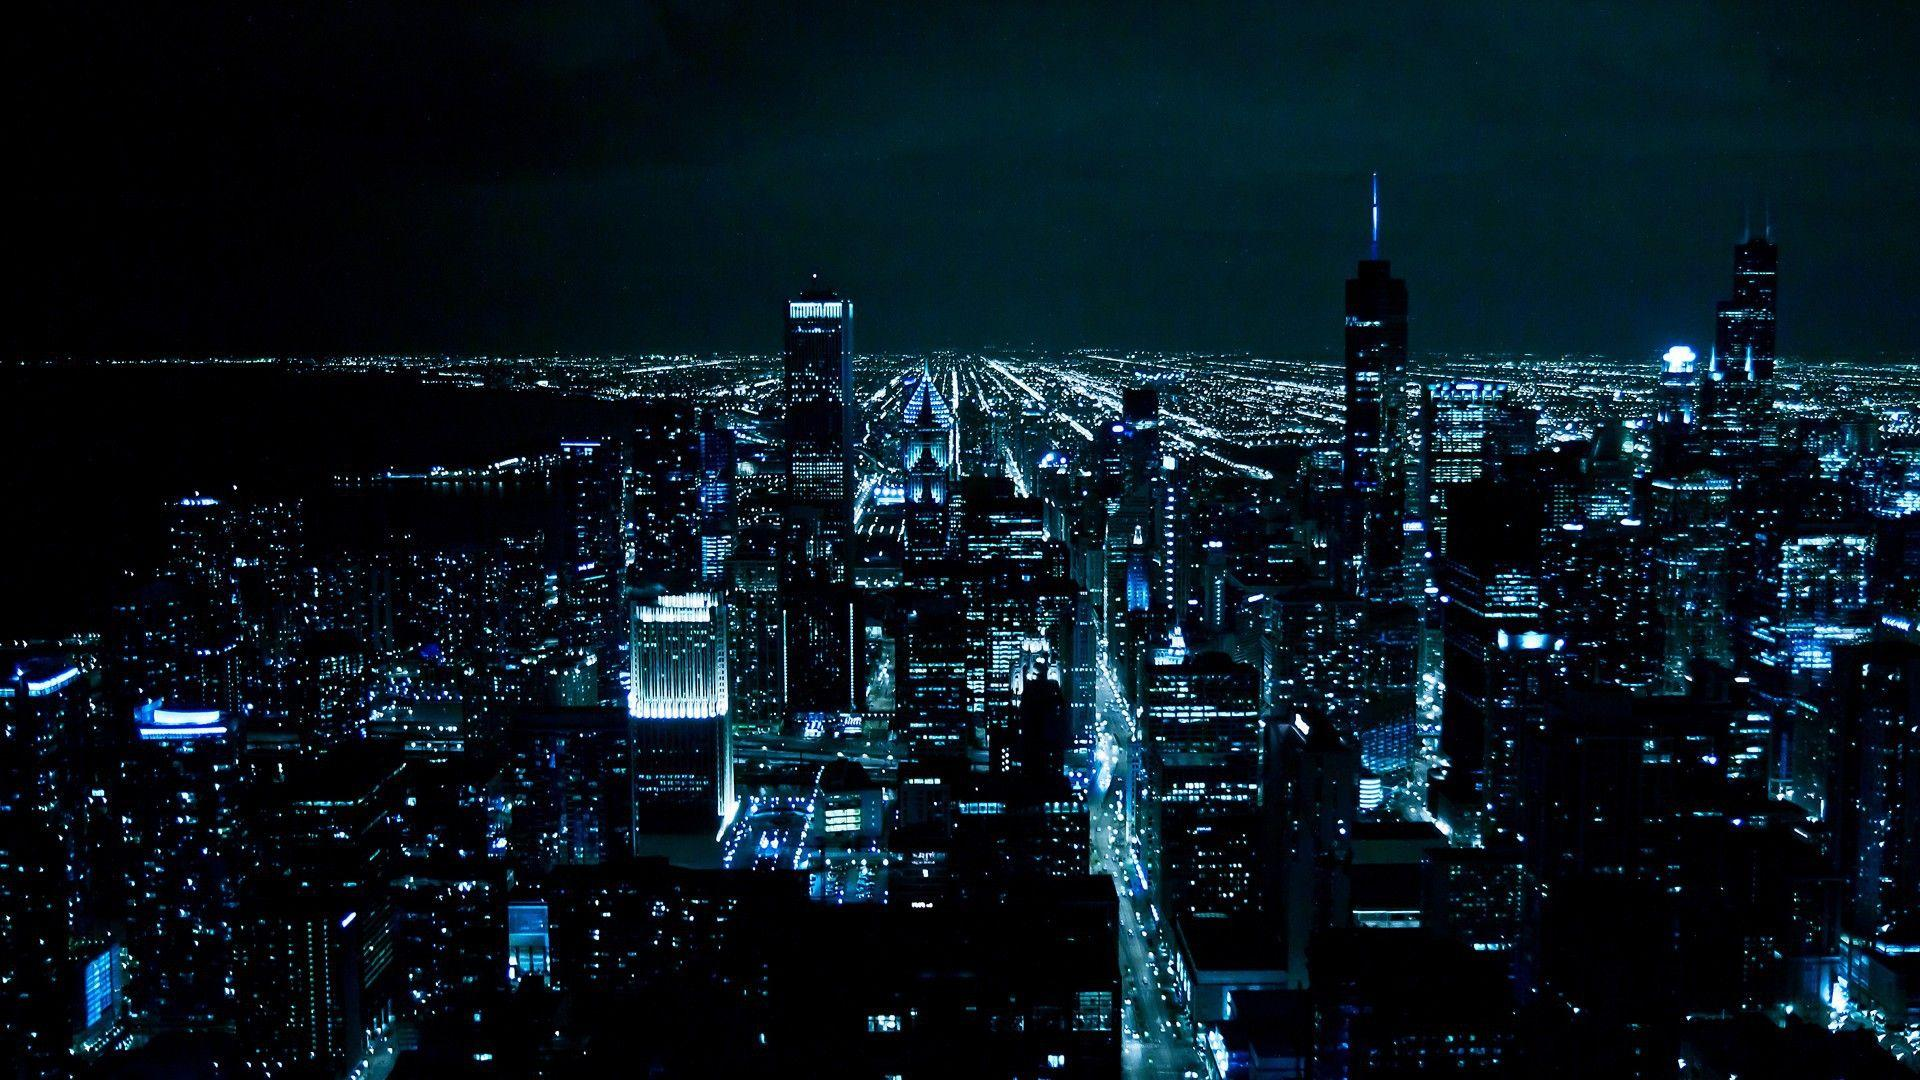 City Buildings Cityscape At Night Wallpapers - Wallpaper Cave